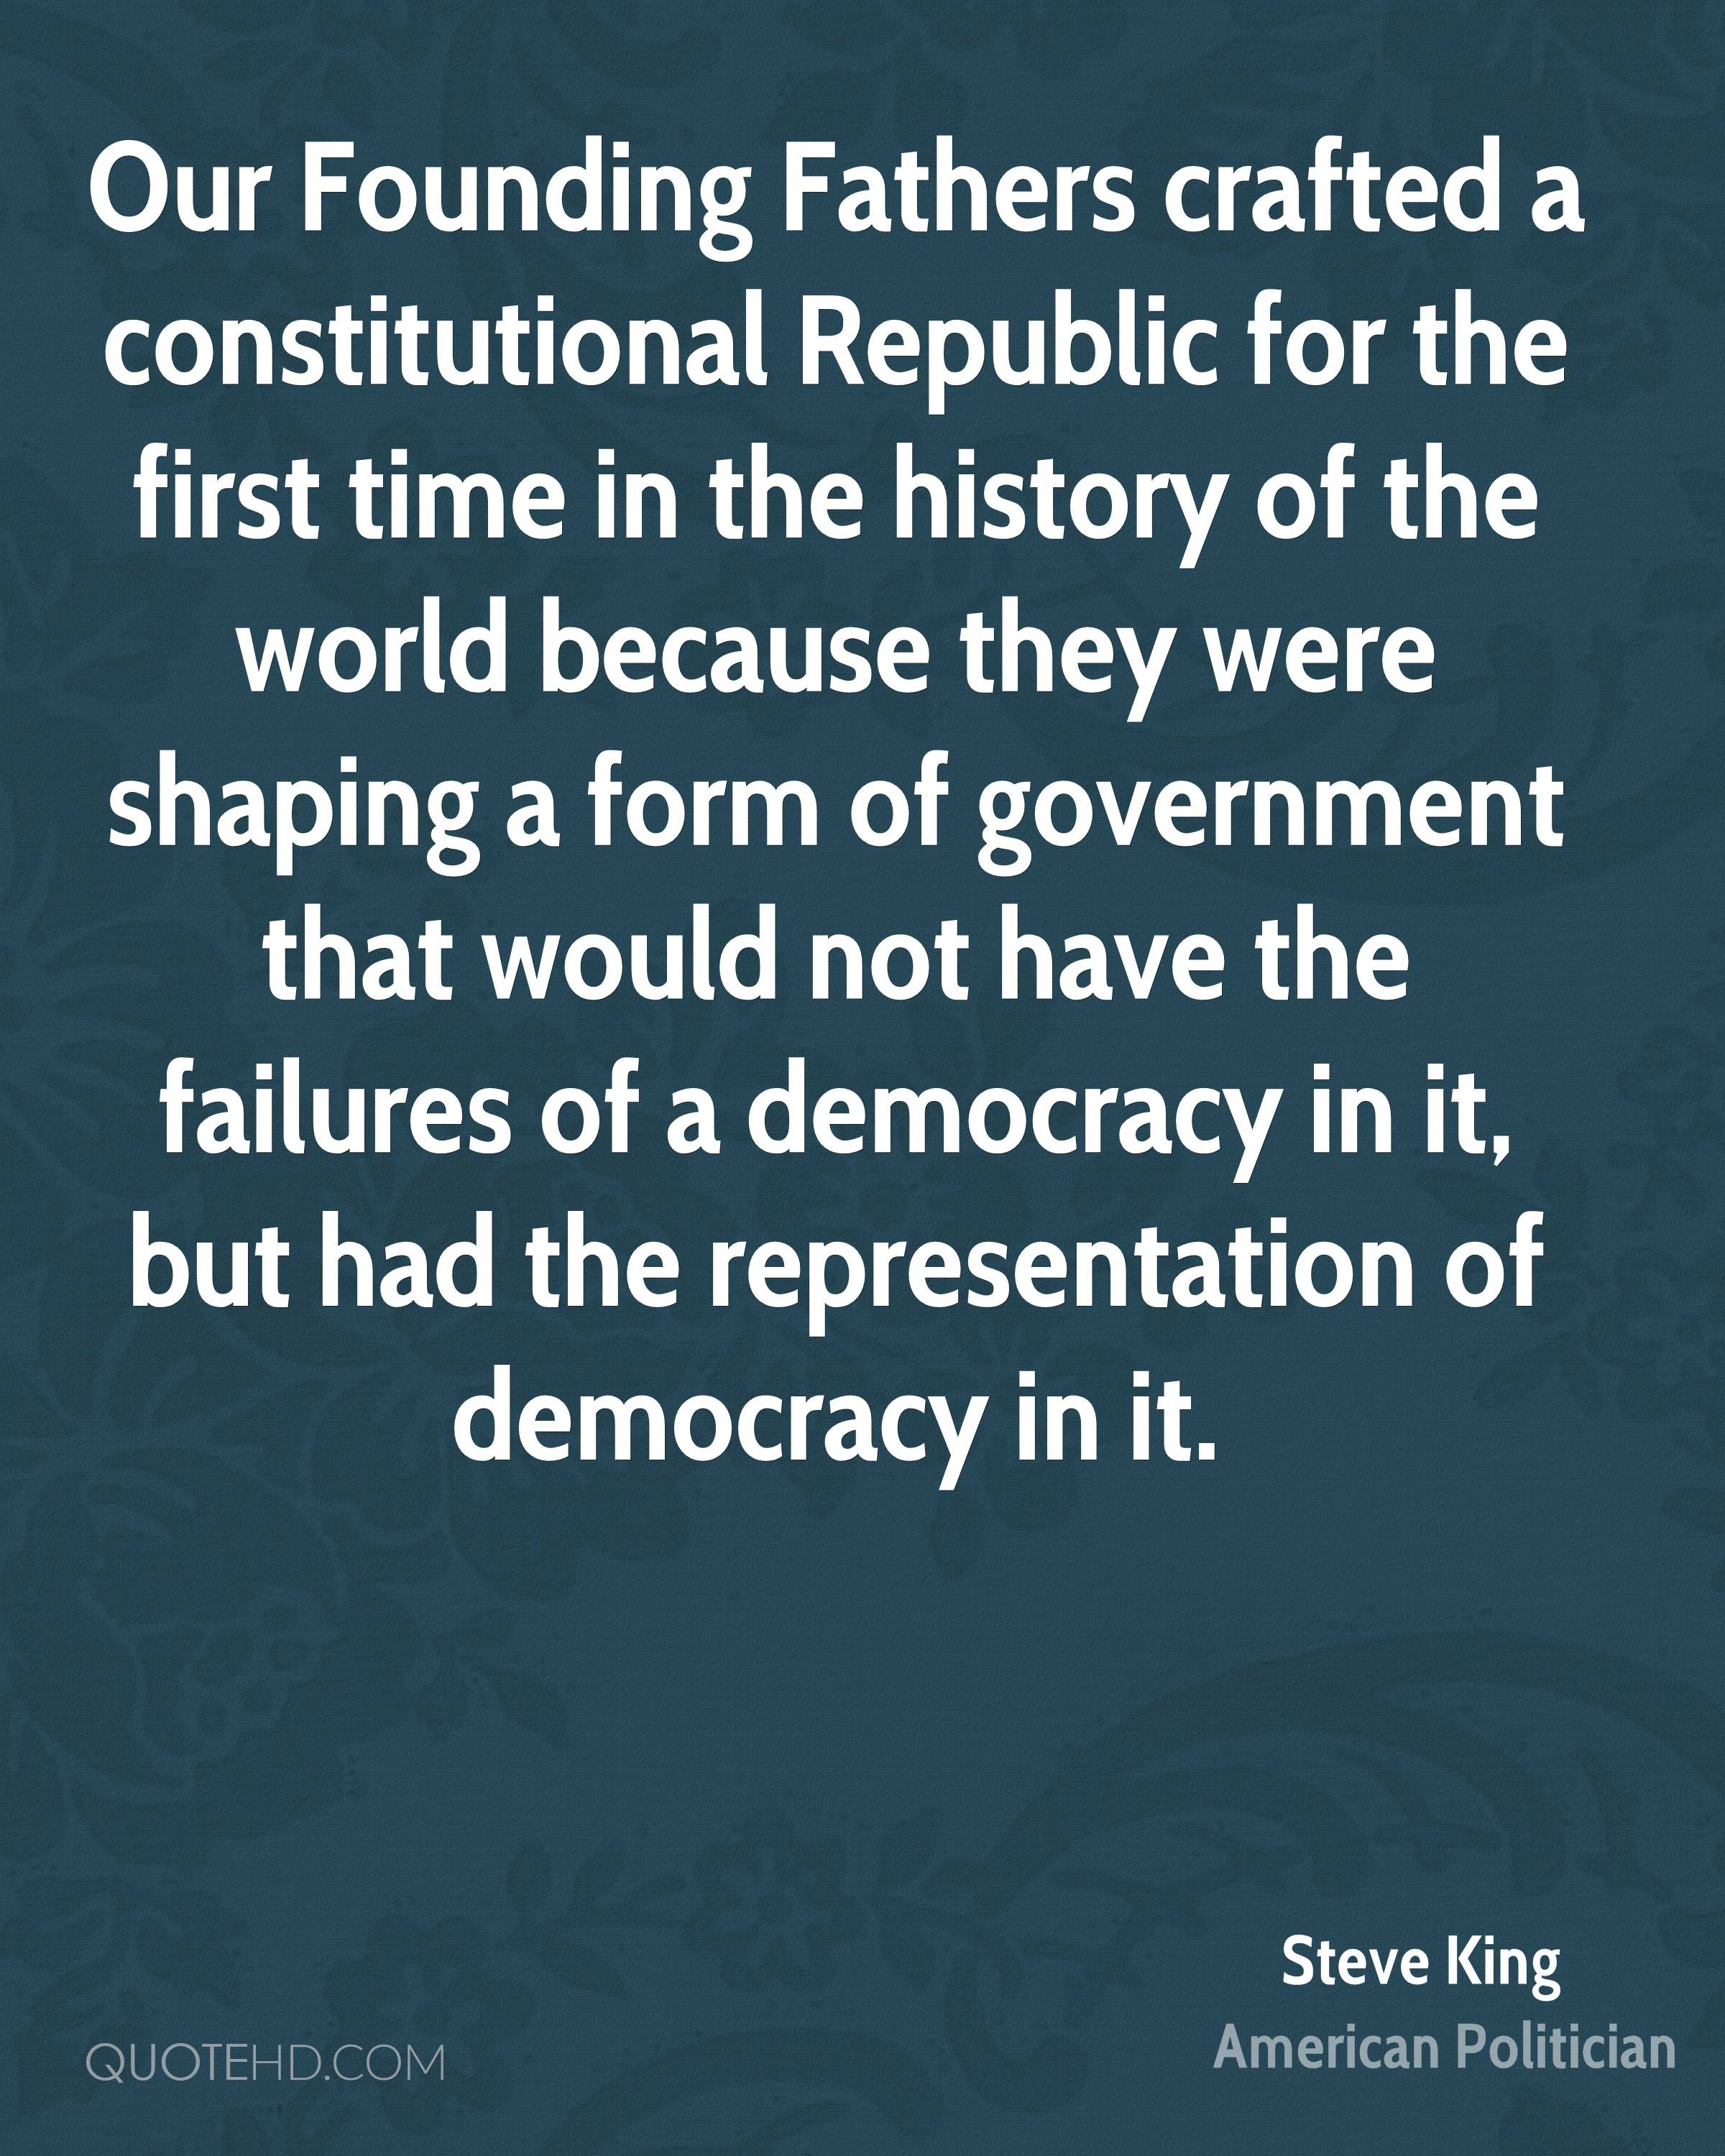 Our Founding Fathers crafted a constitutional Republic for the first time in the history of the world because they were shaping a form of government that would not have the failures of a democracy in it, but had the representation of democracy in it.